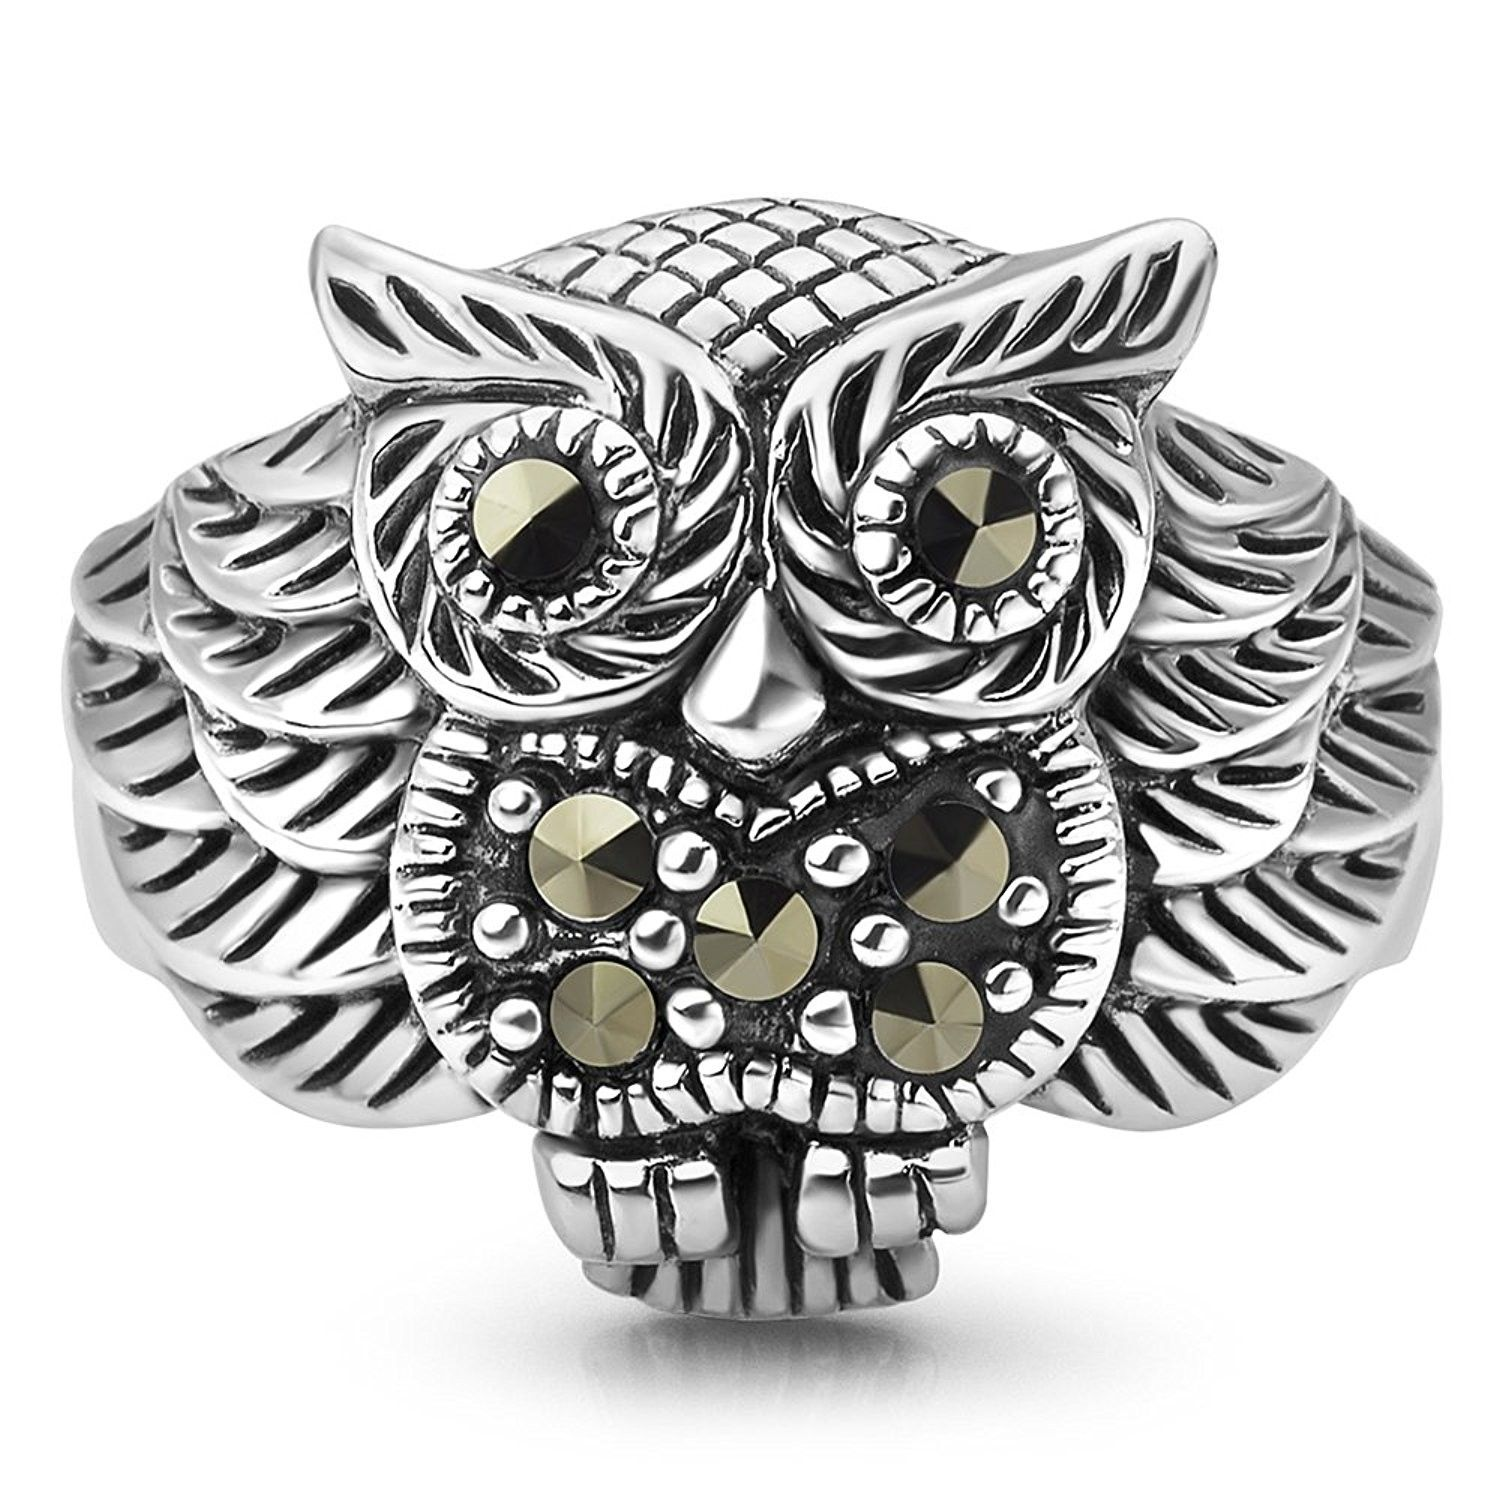 Nickel Free Chuvora 925 Oxidized Sterling Silver Detail Owl Ring